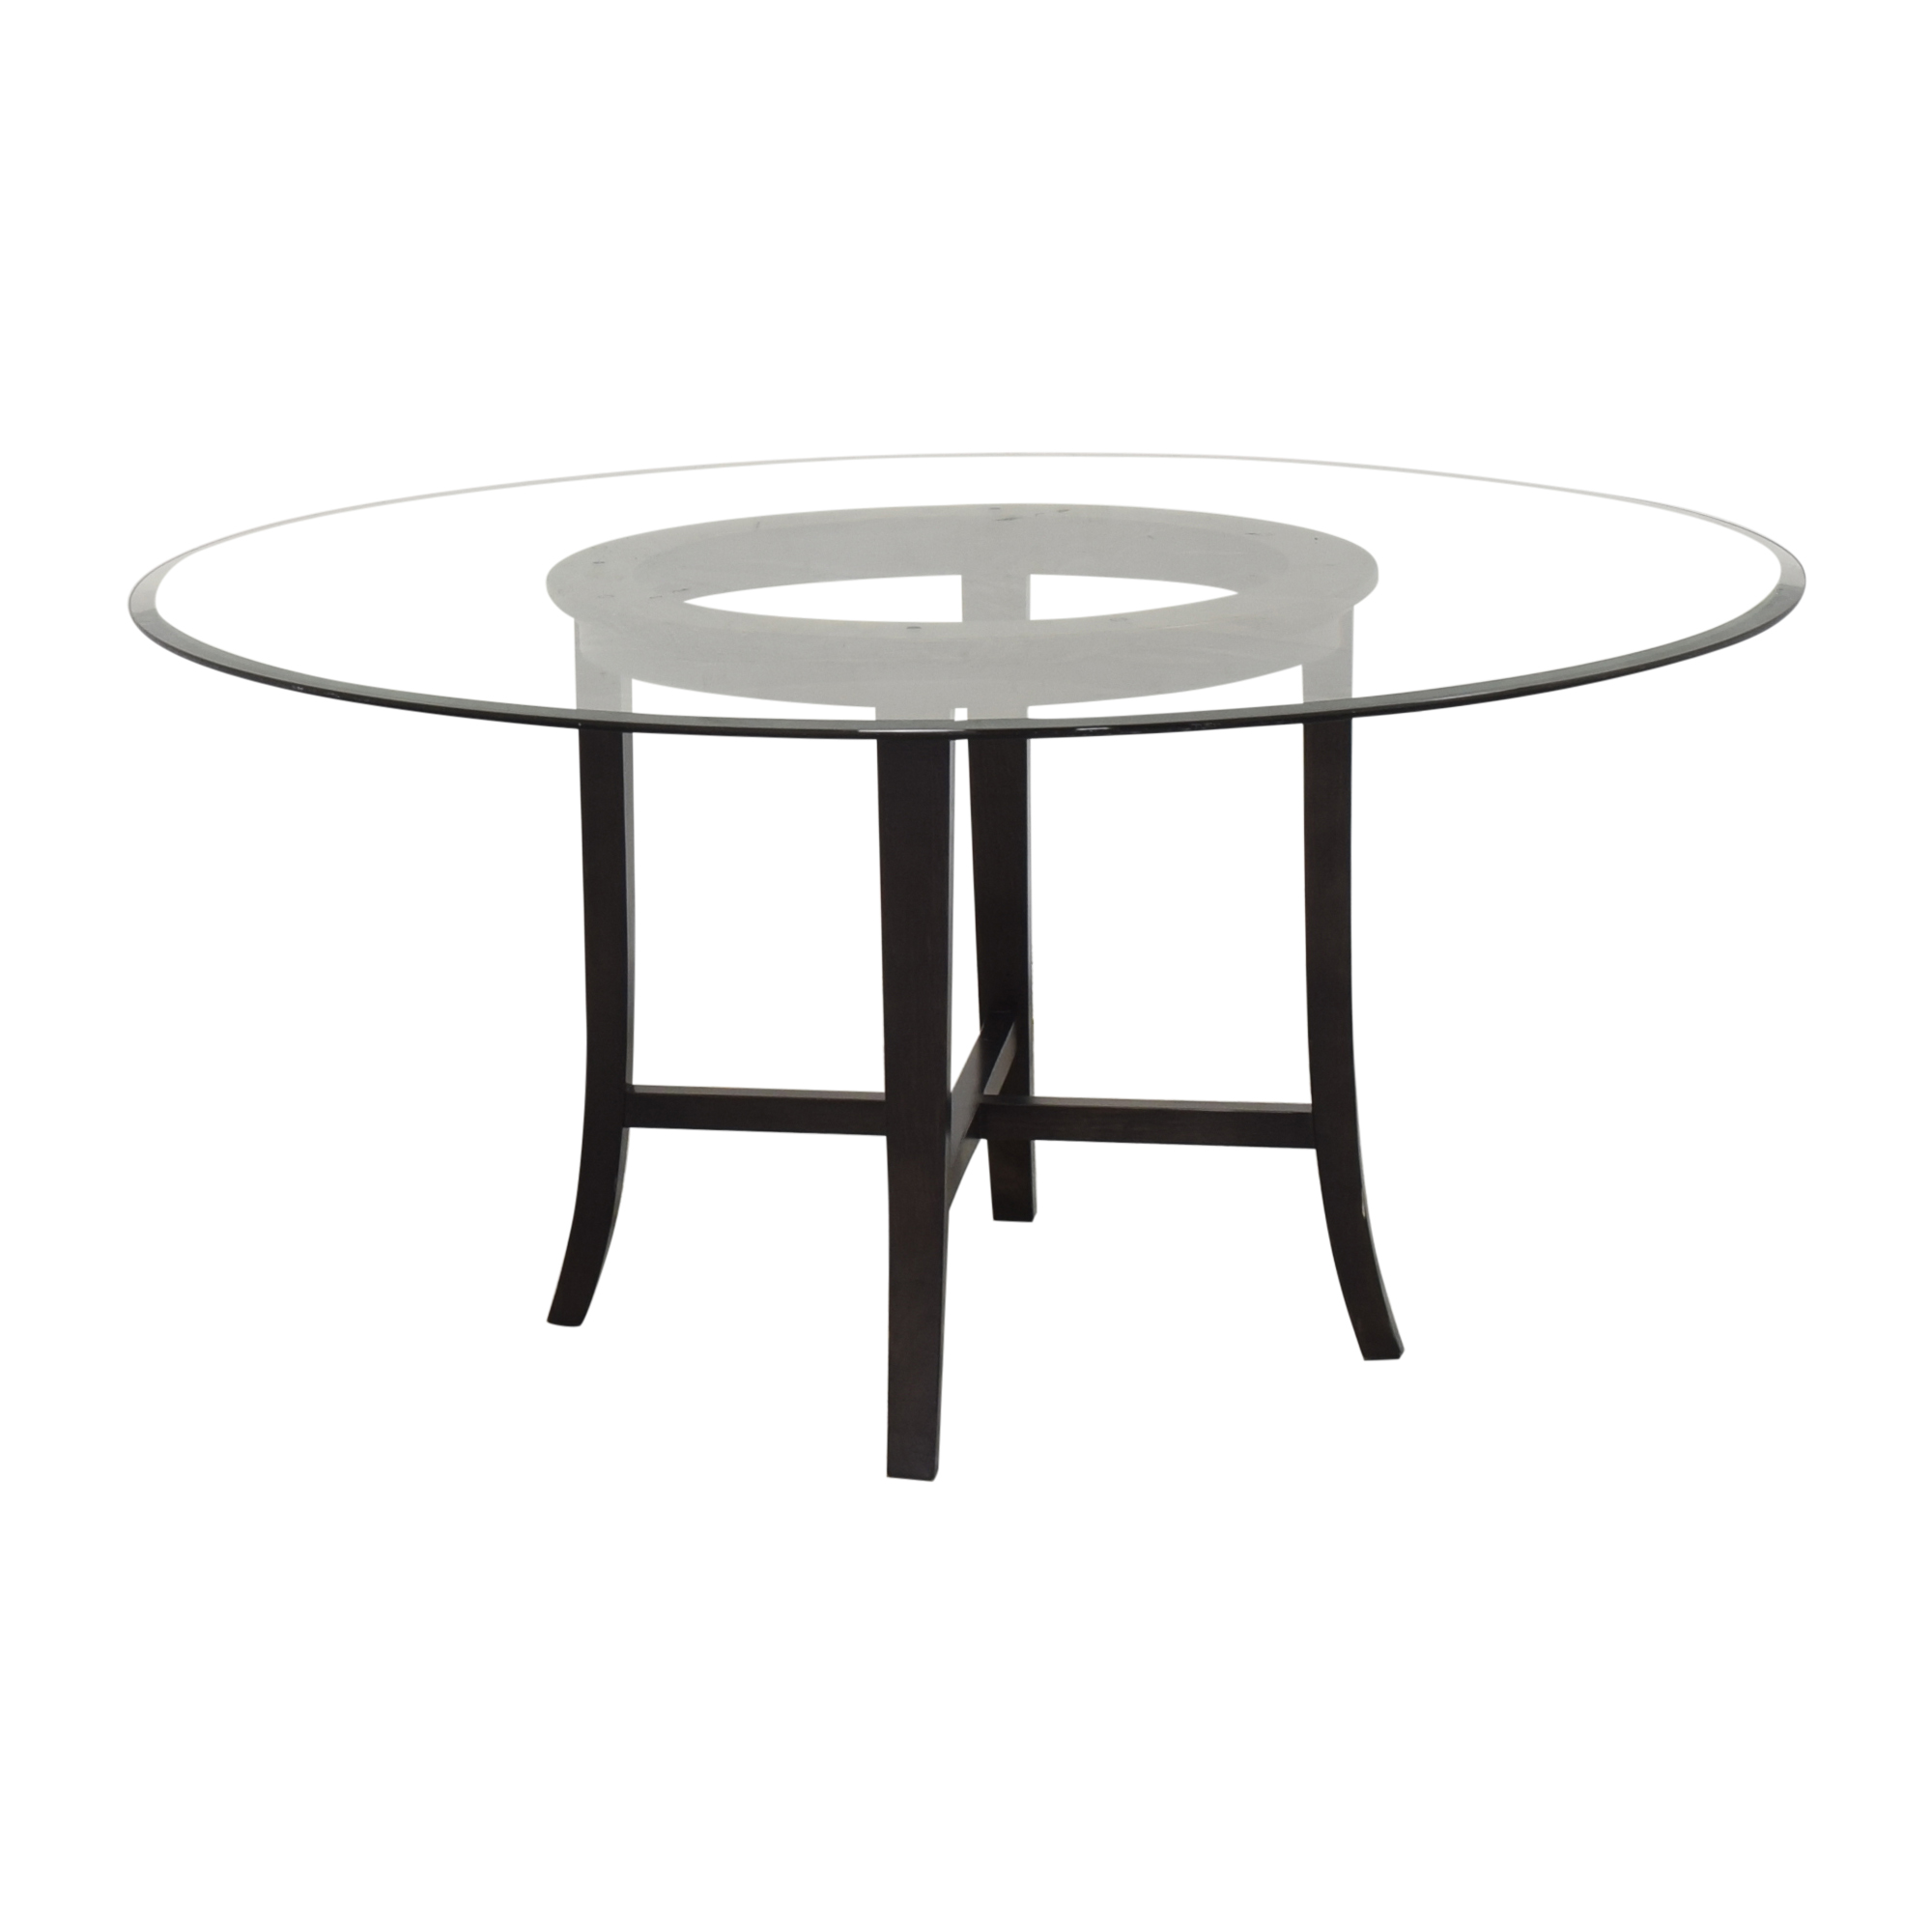 shop Crate & Barrel Halo Dining Table with Transparent Surface Crate & Barrel